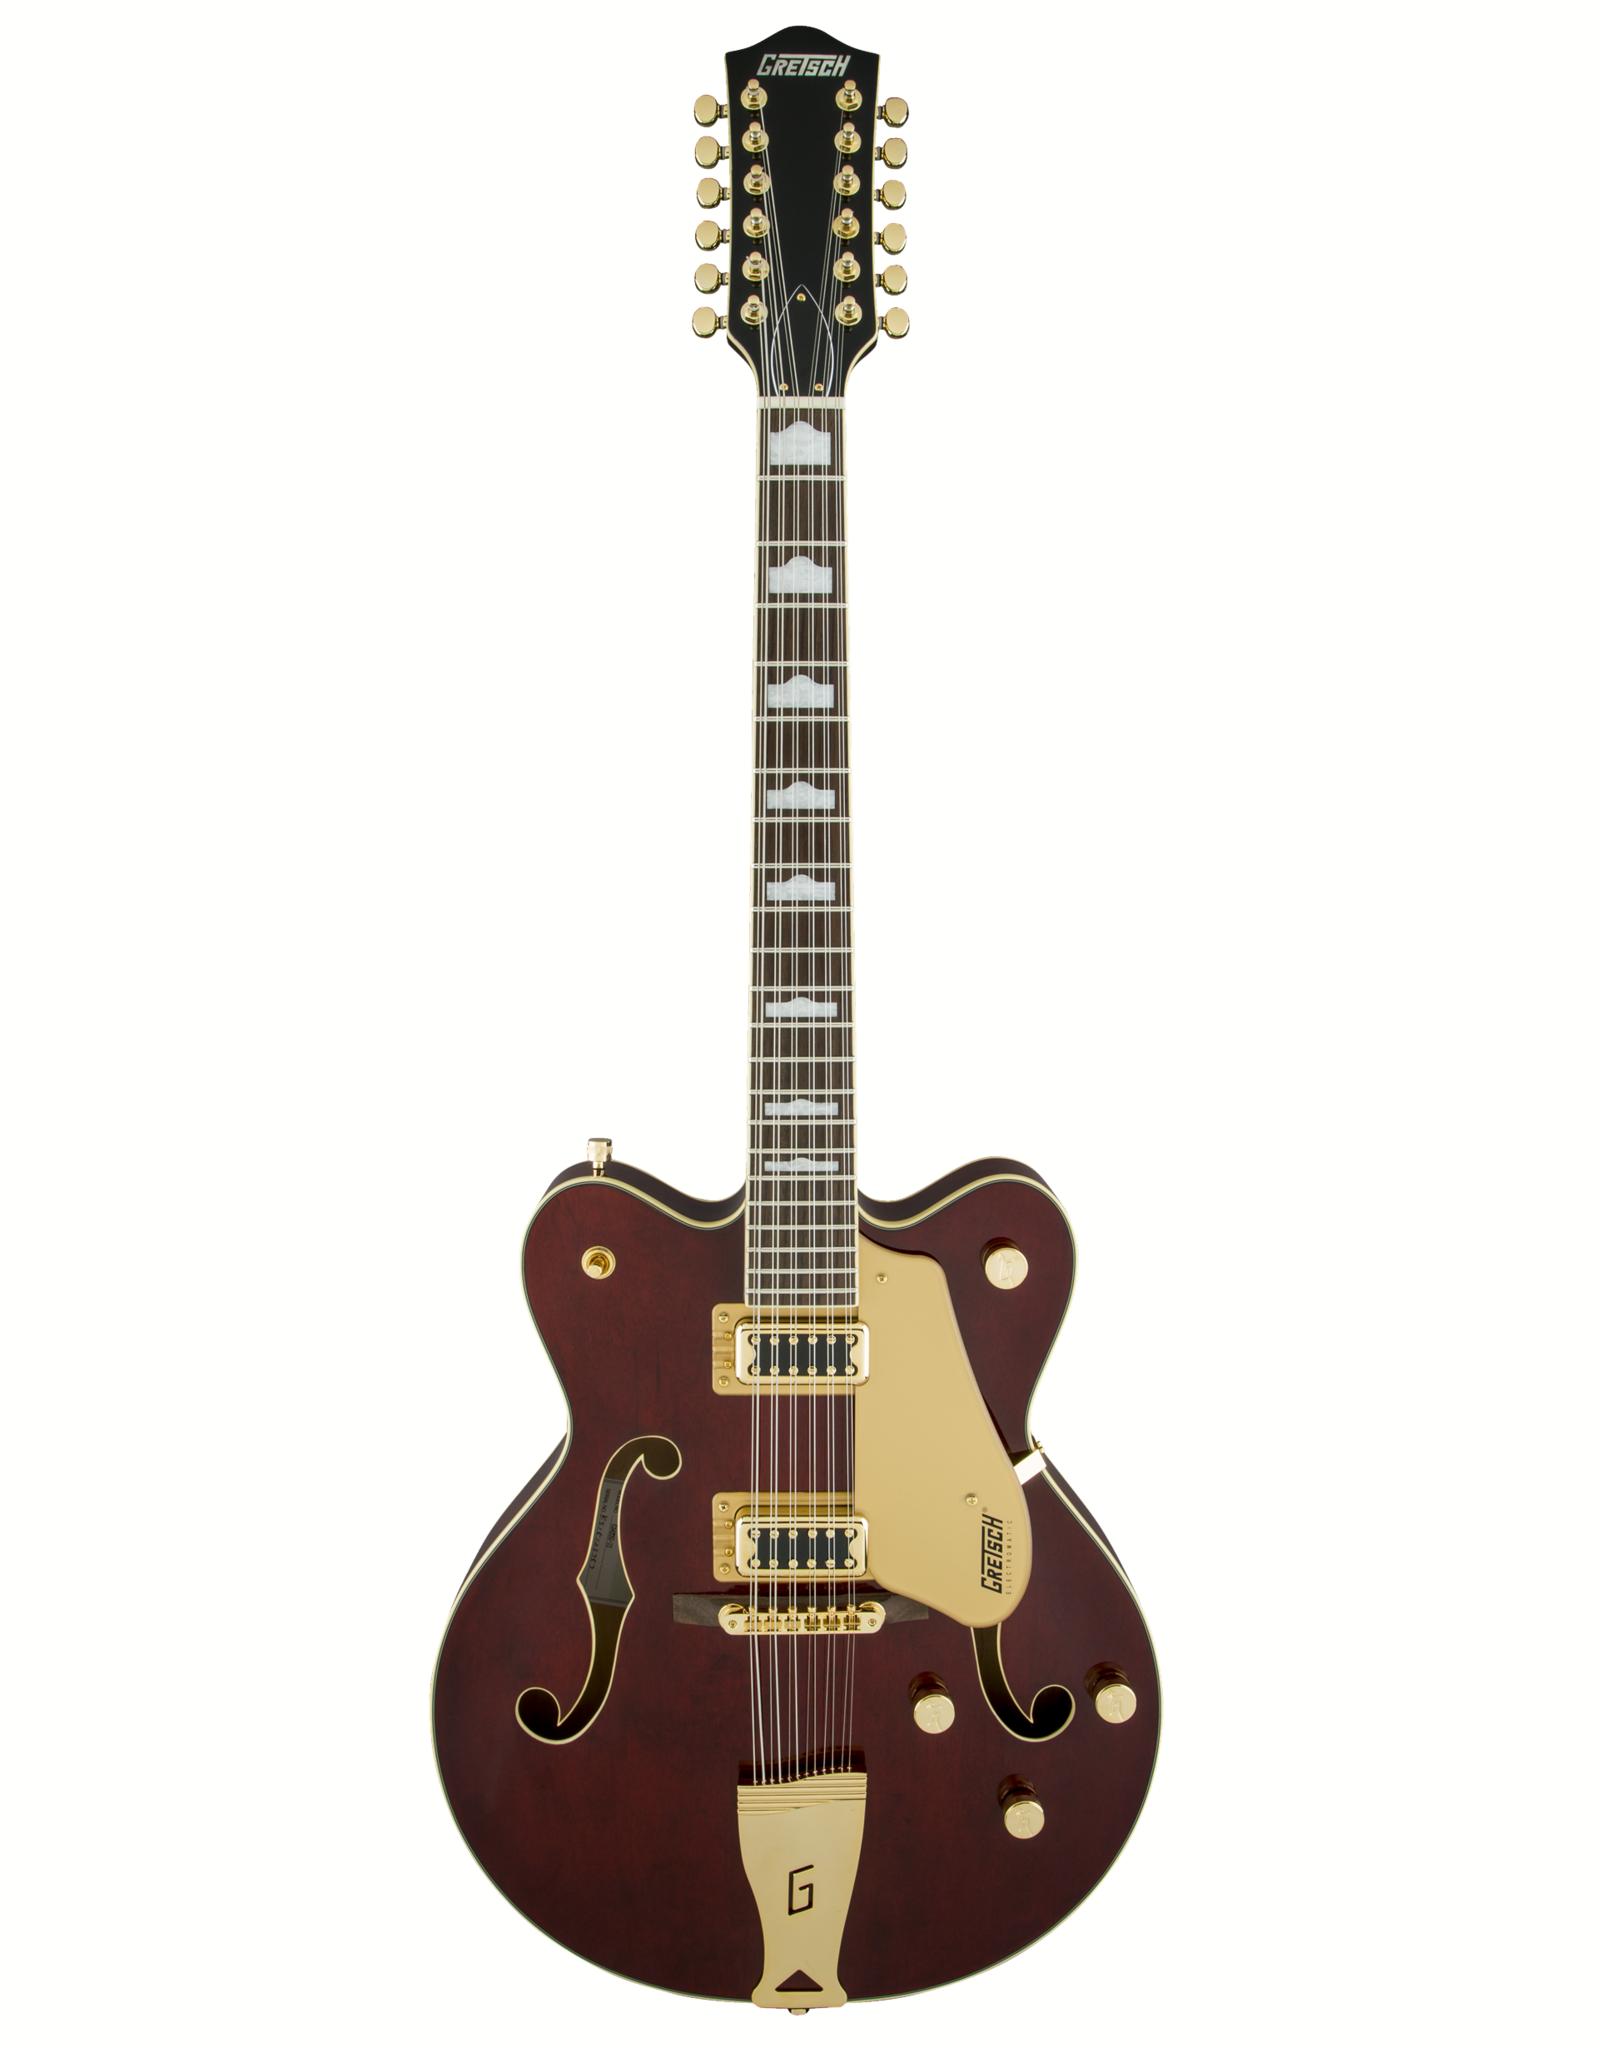 Gretsch Gretsch G5422G-12 Electromatic® Hollow Body Double-Cut 12-String with Gold Hardware, Walnut Stain